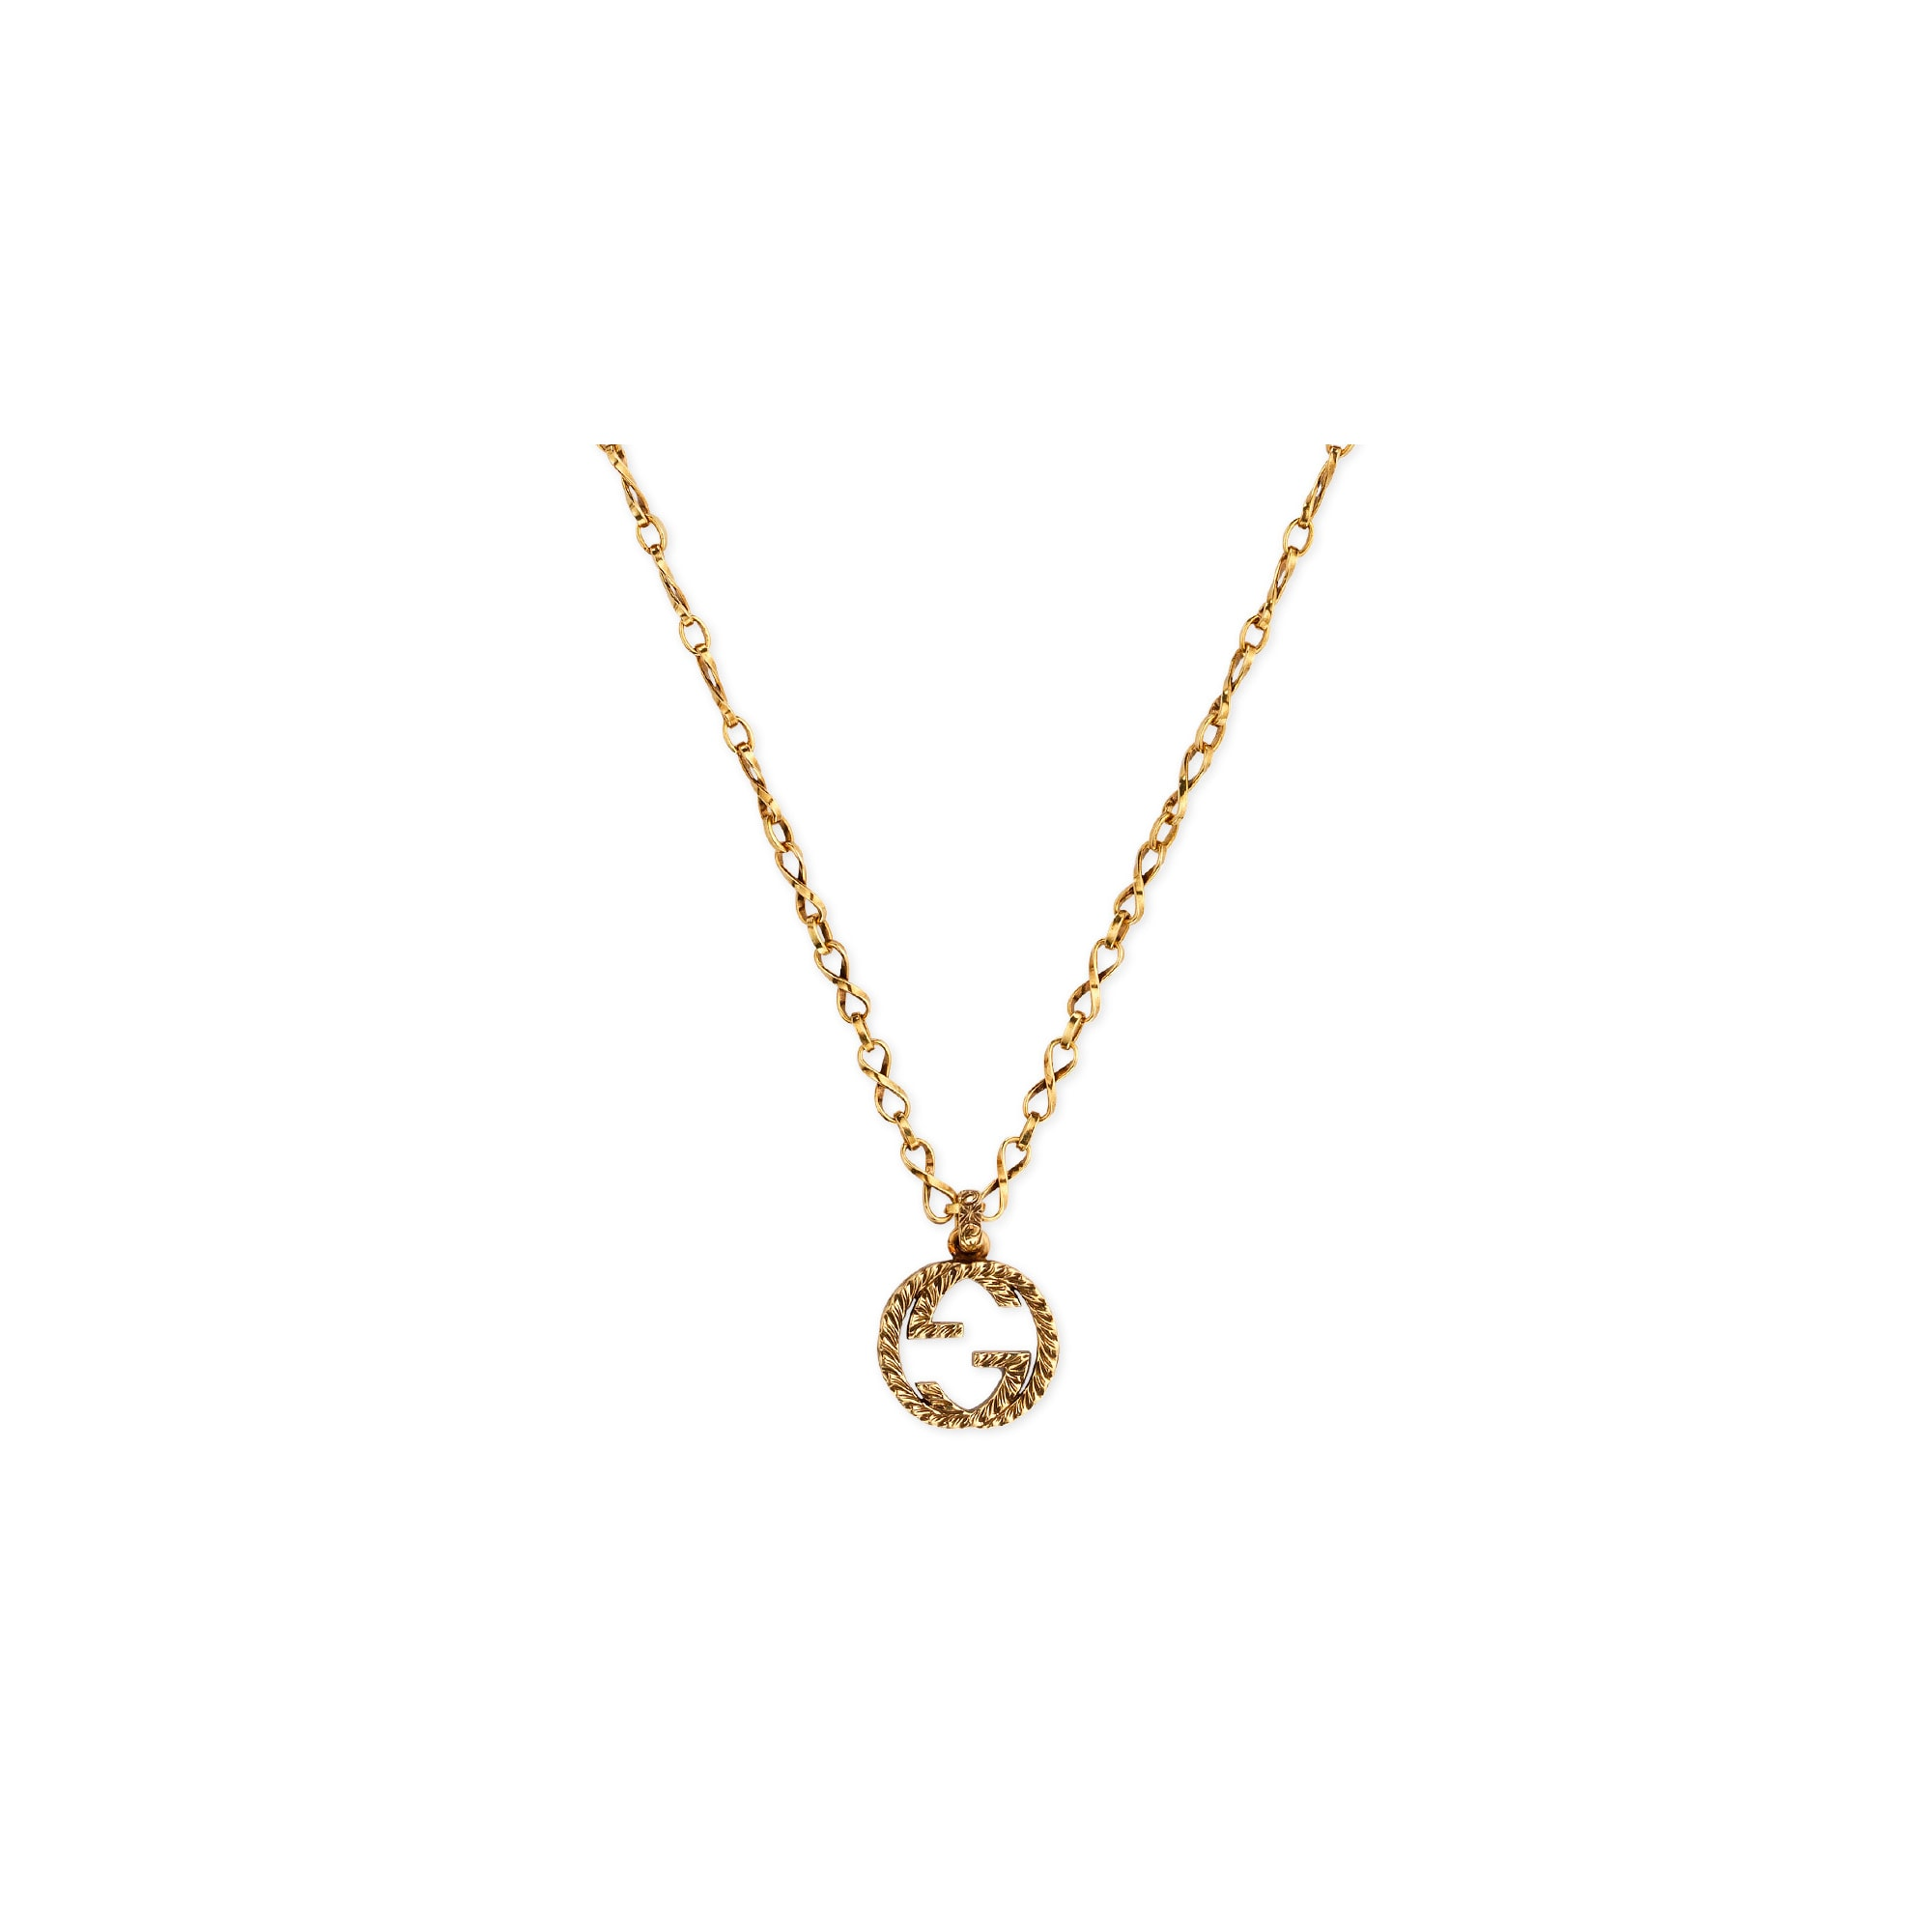 GUCCI Yellow gold necklace with Interlocking G COLLANA DISCOUNT SCONTO